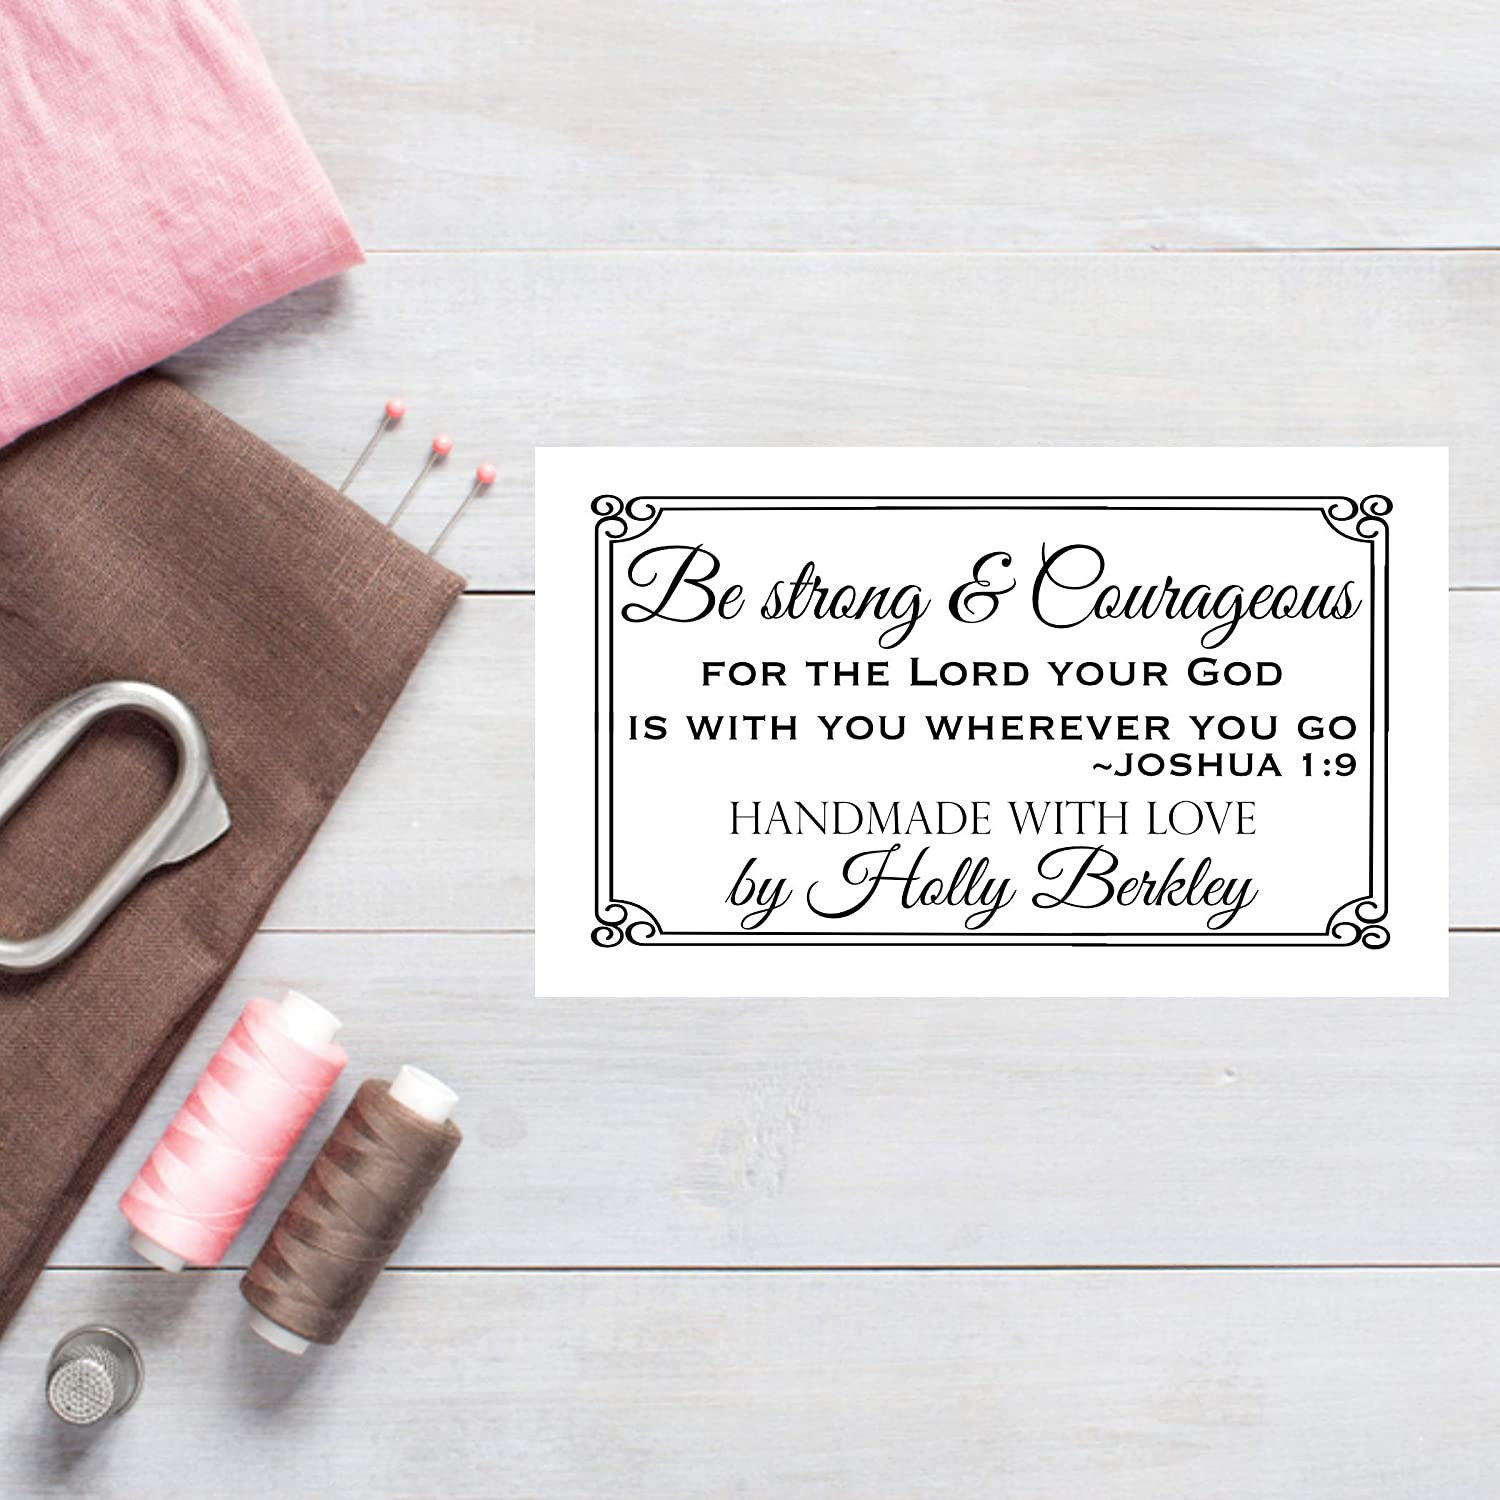 Tampa Mall Be Strong and Courageous Quilt Discount mail order Labels